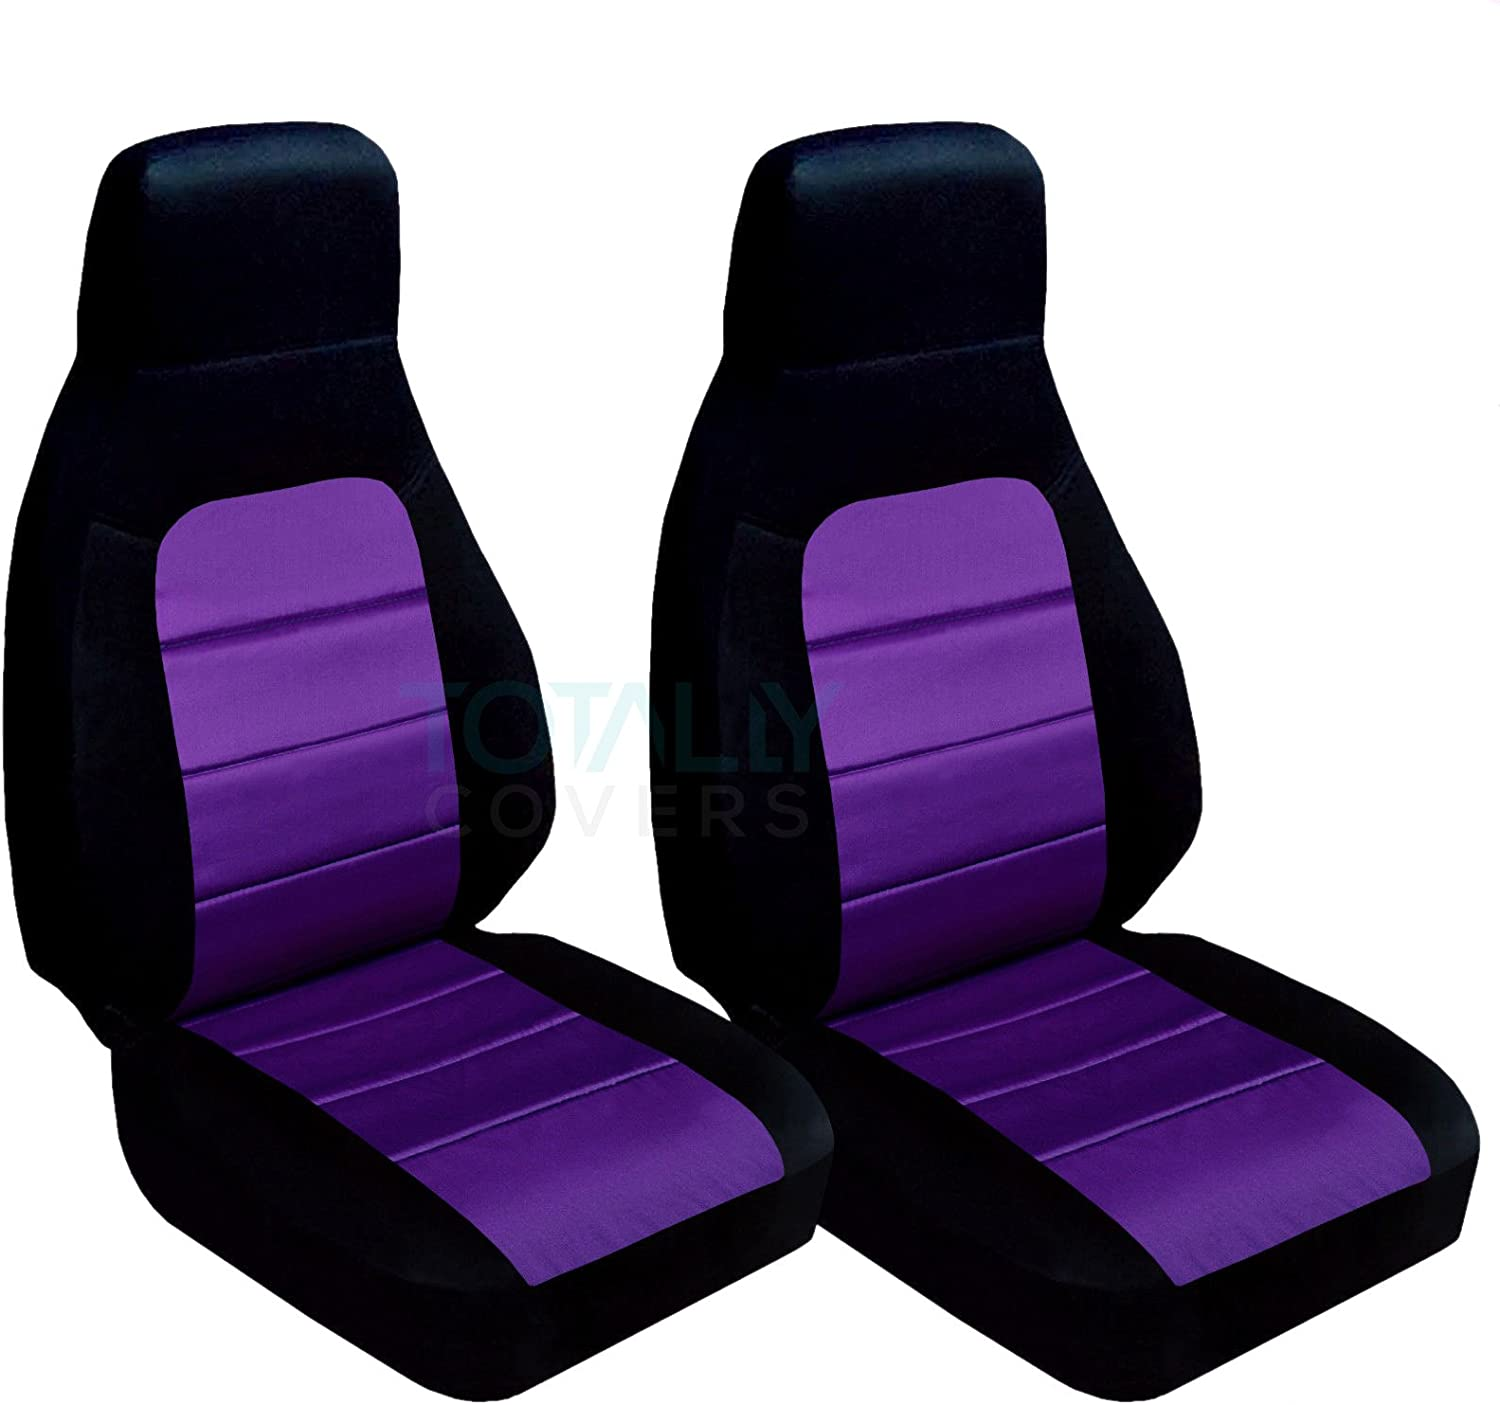 Totally Covers Compatible with 1990-2000 Mazda MX-5 Miata Seat Covers Black and Red 22 Colors Bucket